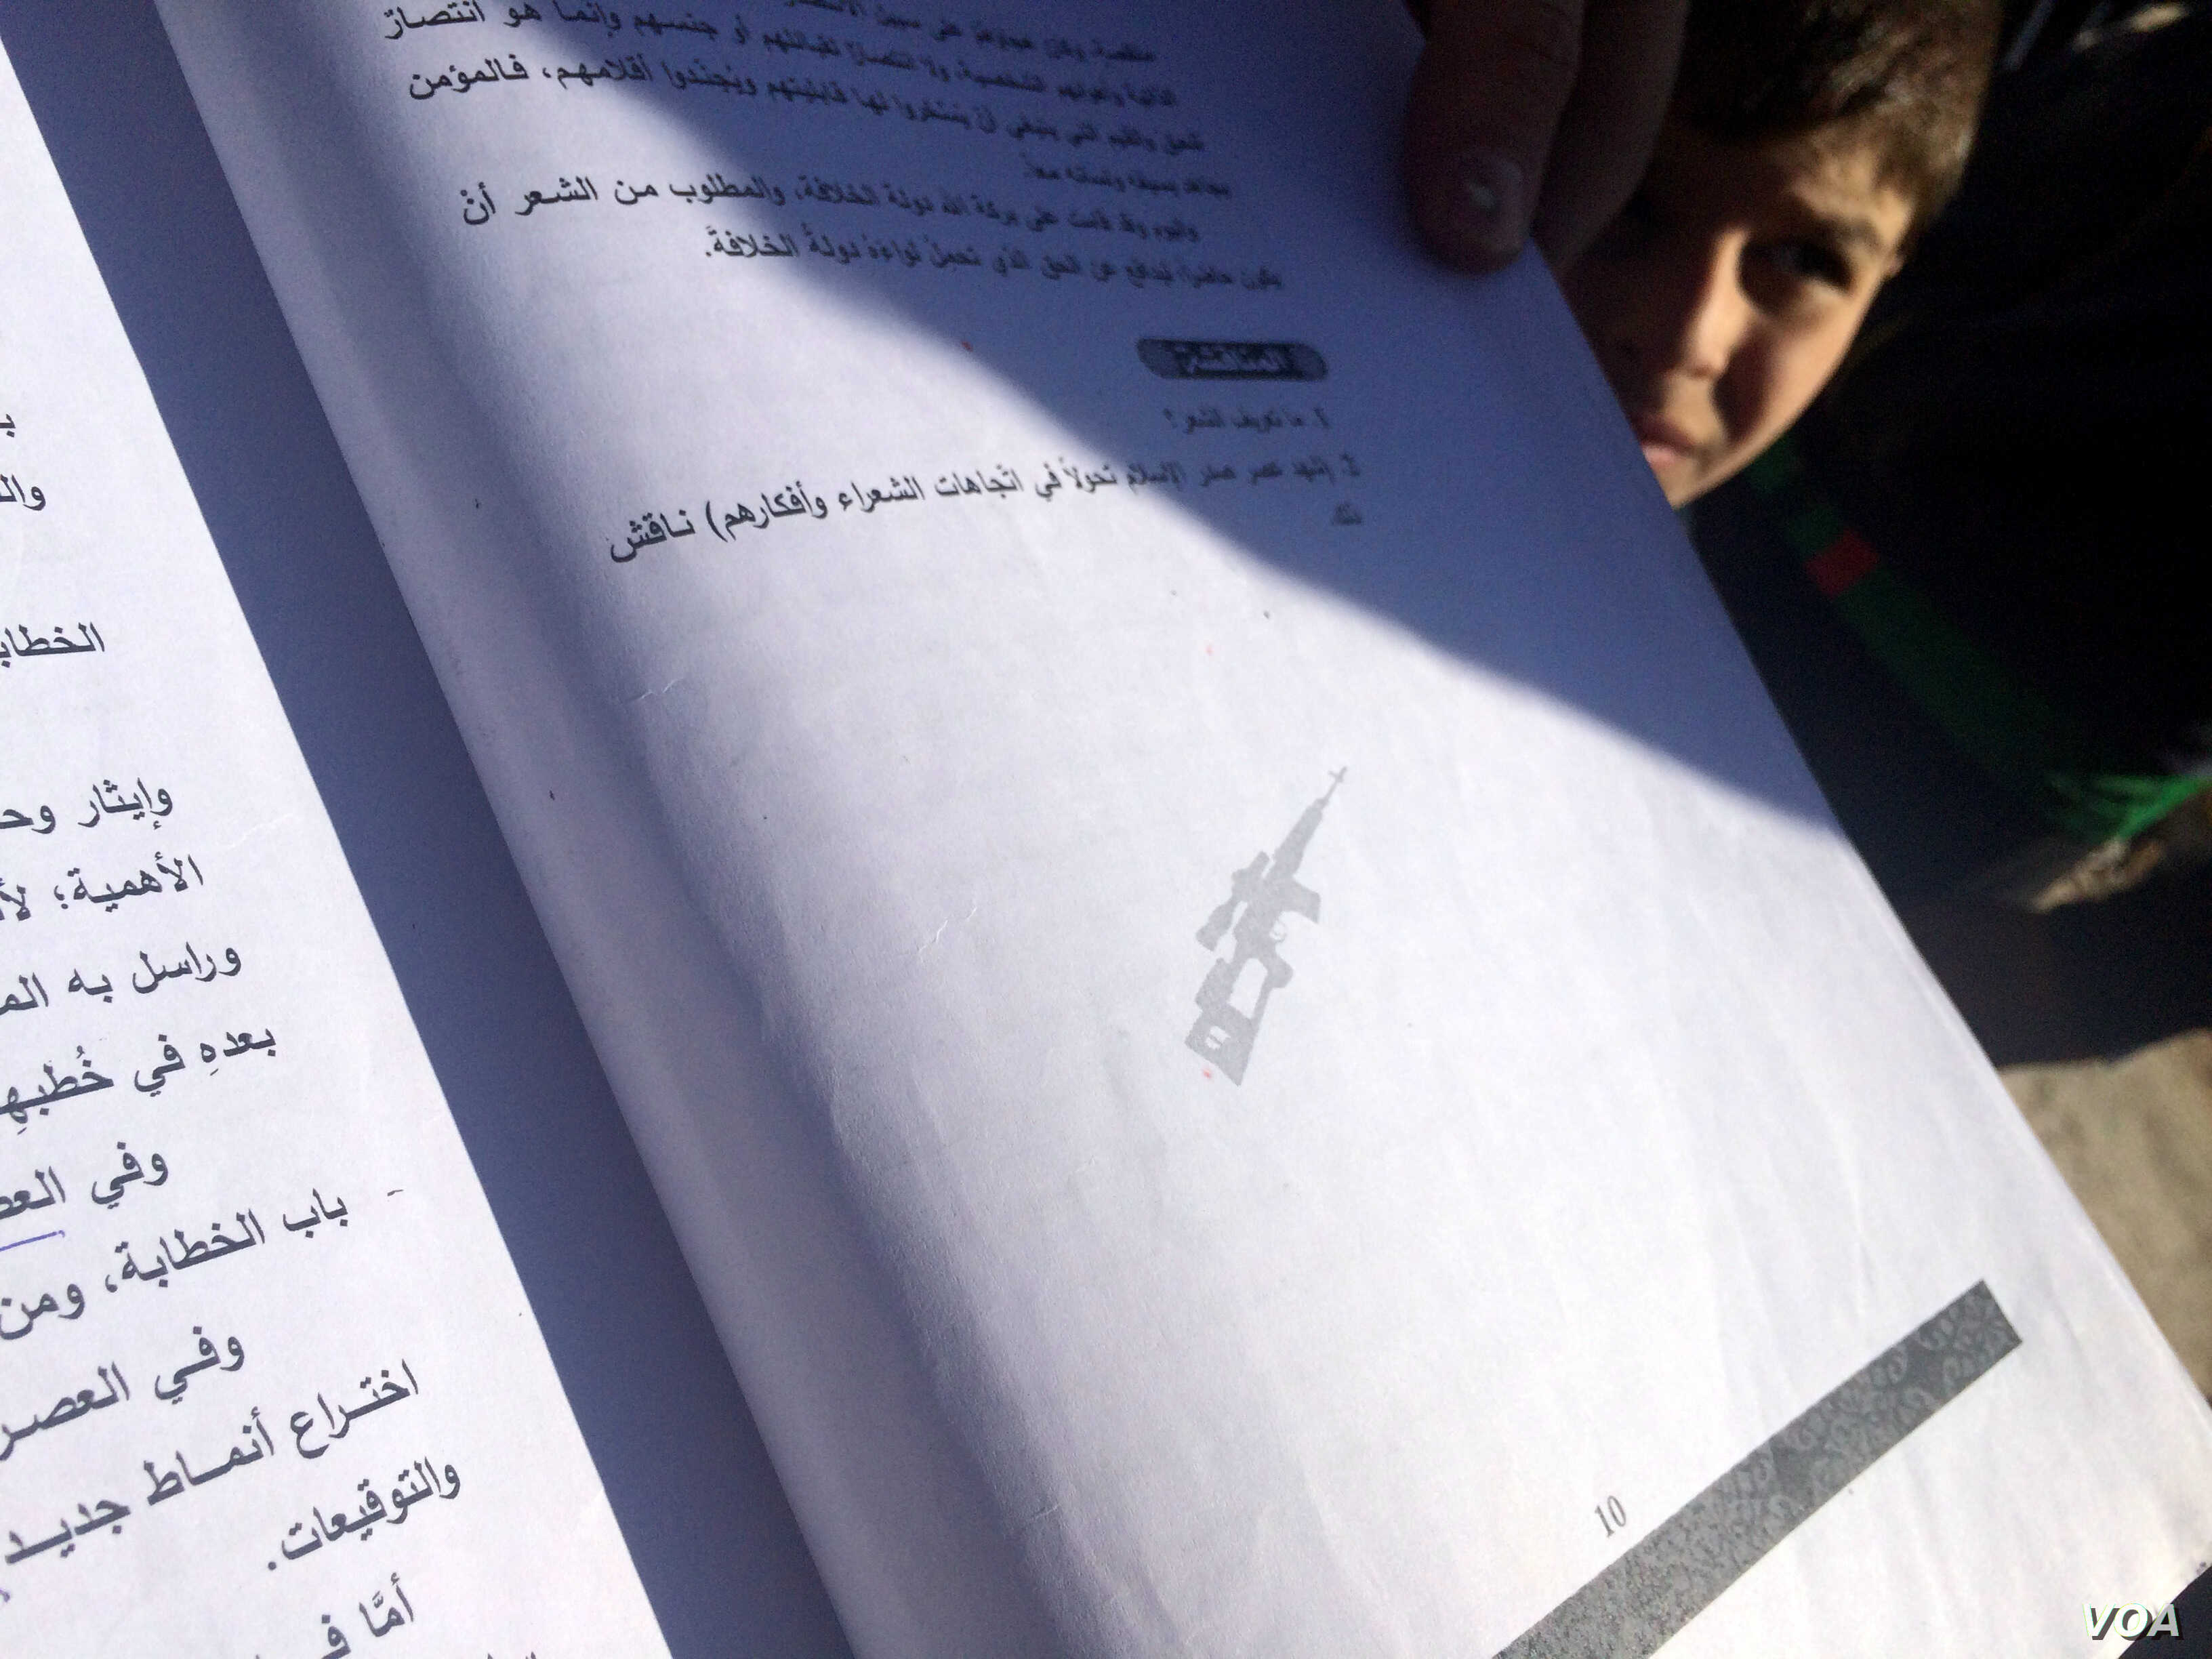 Teachers point out AK-47 logos and prayers for dead al-Qaida leaders on book pages in Mosul, Iraq, Nov. 23, 2016. (H. Murdock/VOA)